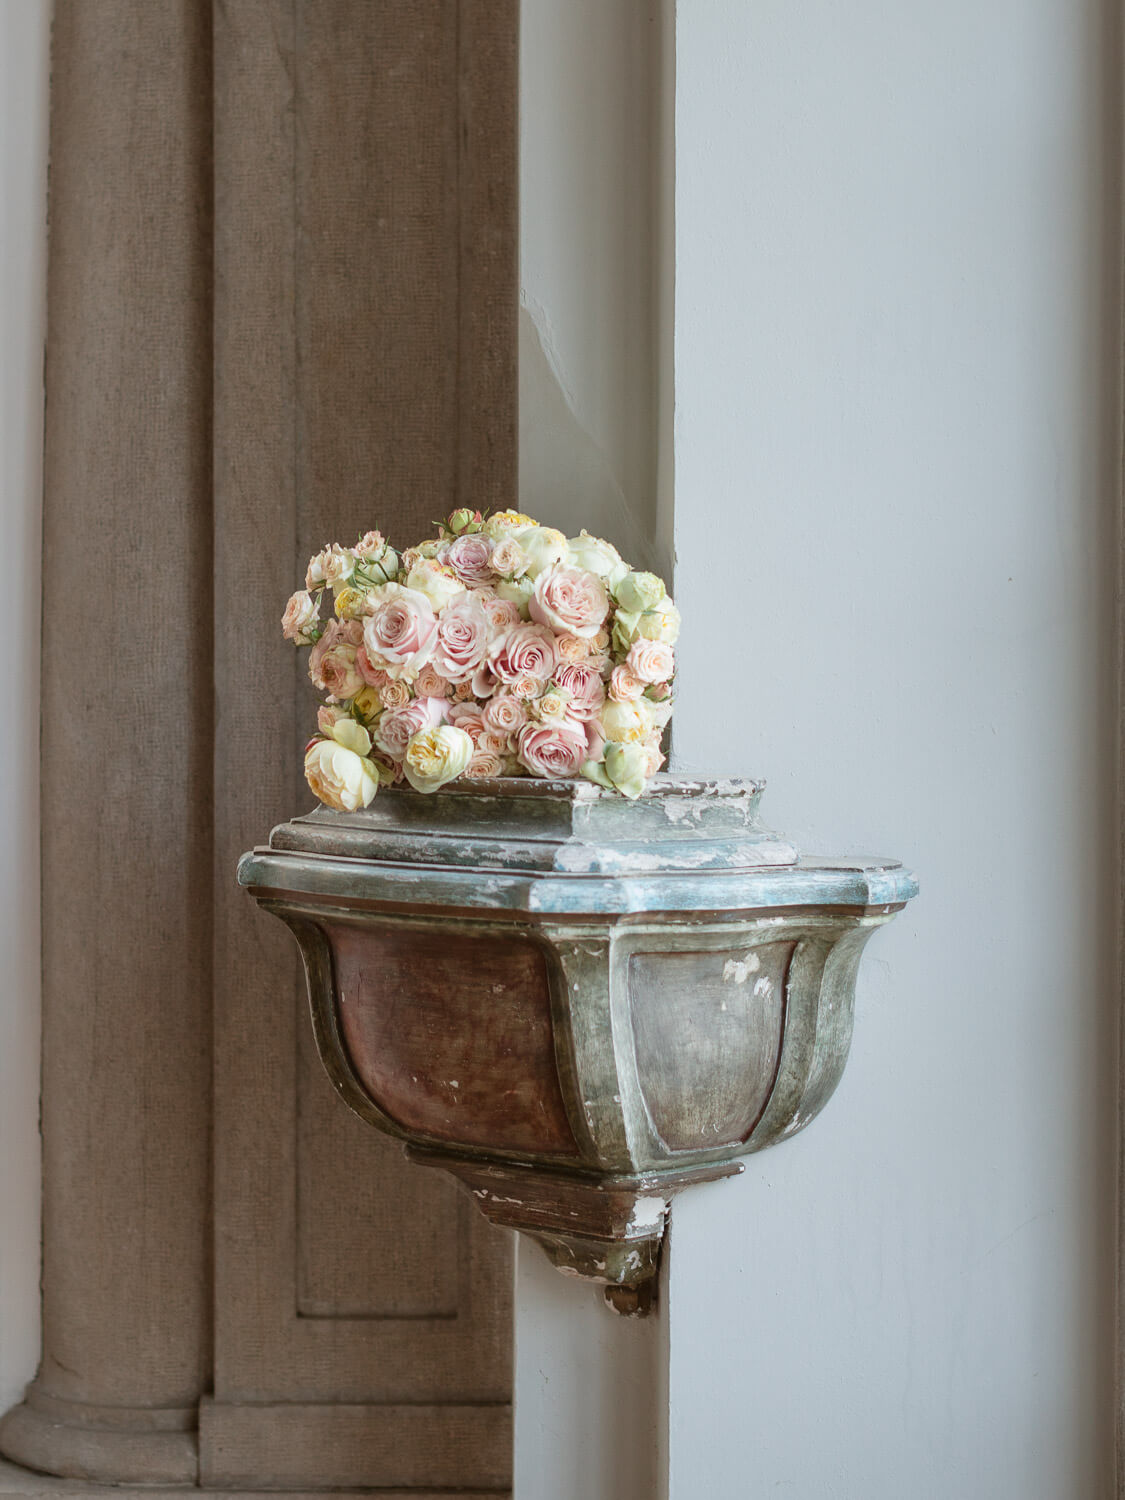 spray roses bridal bouquet over wall niche in Casa dos Penedos Sintra by Portugal Wedding Photographer